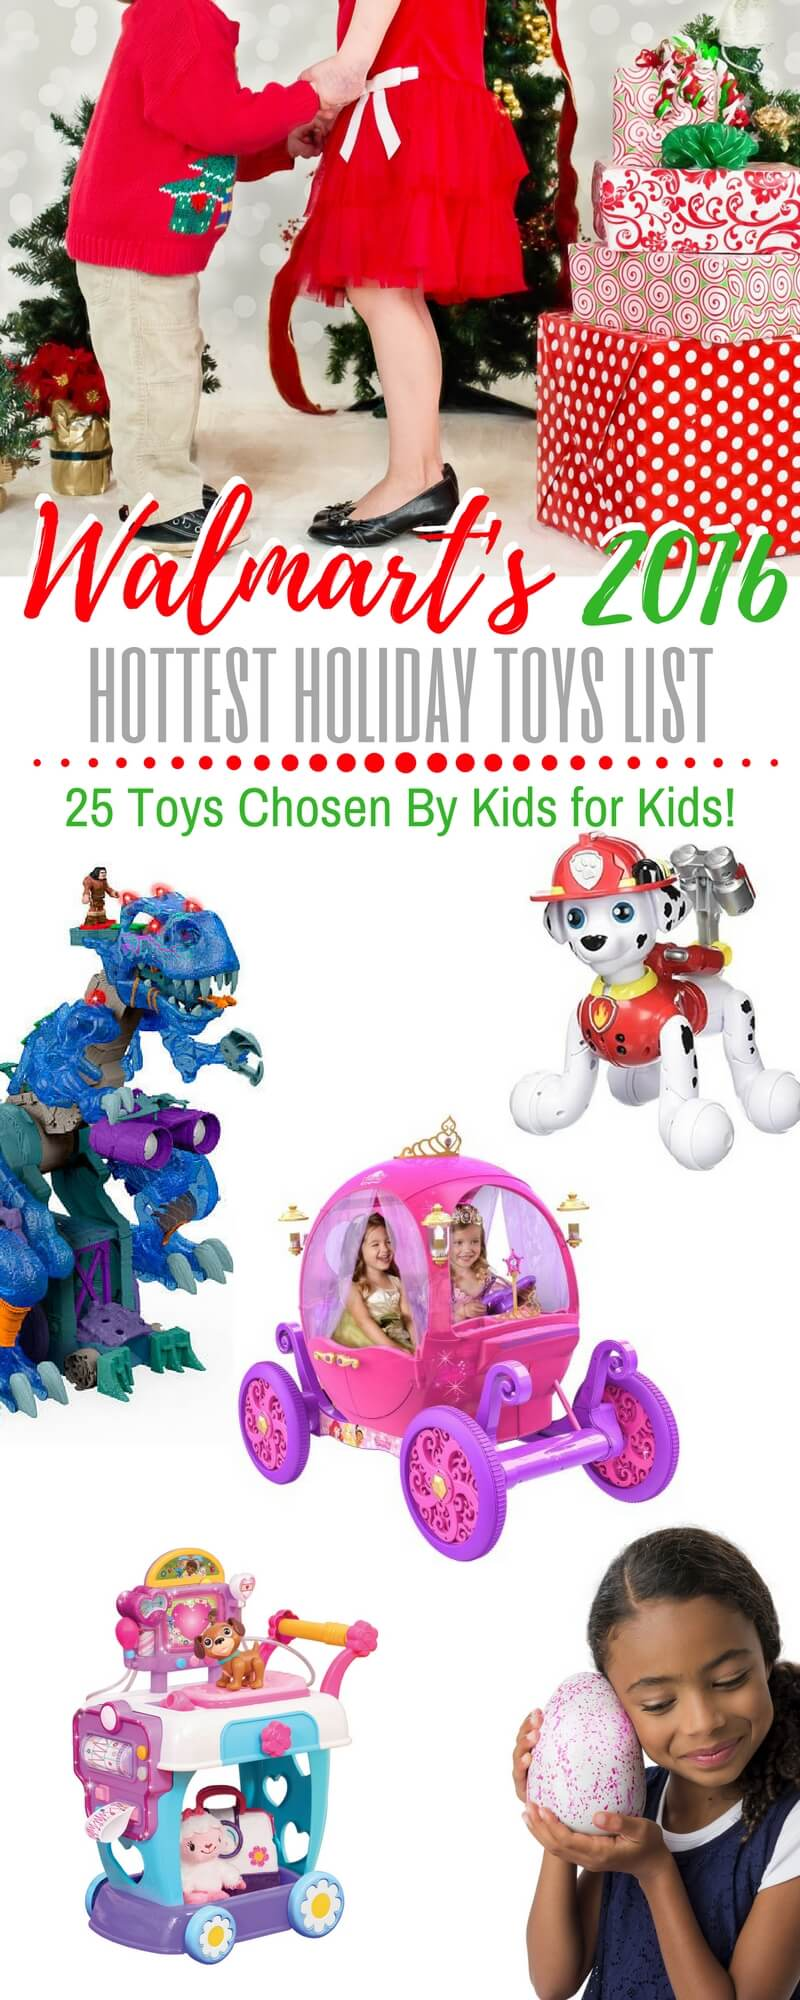 Toys For Holidays : Walmart s chosen by kids top holiday toys list